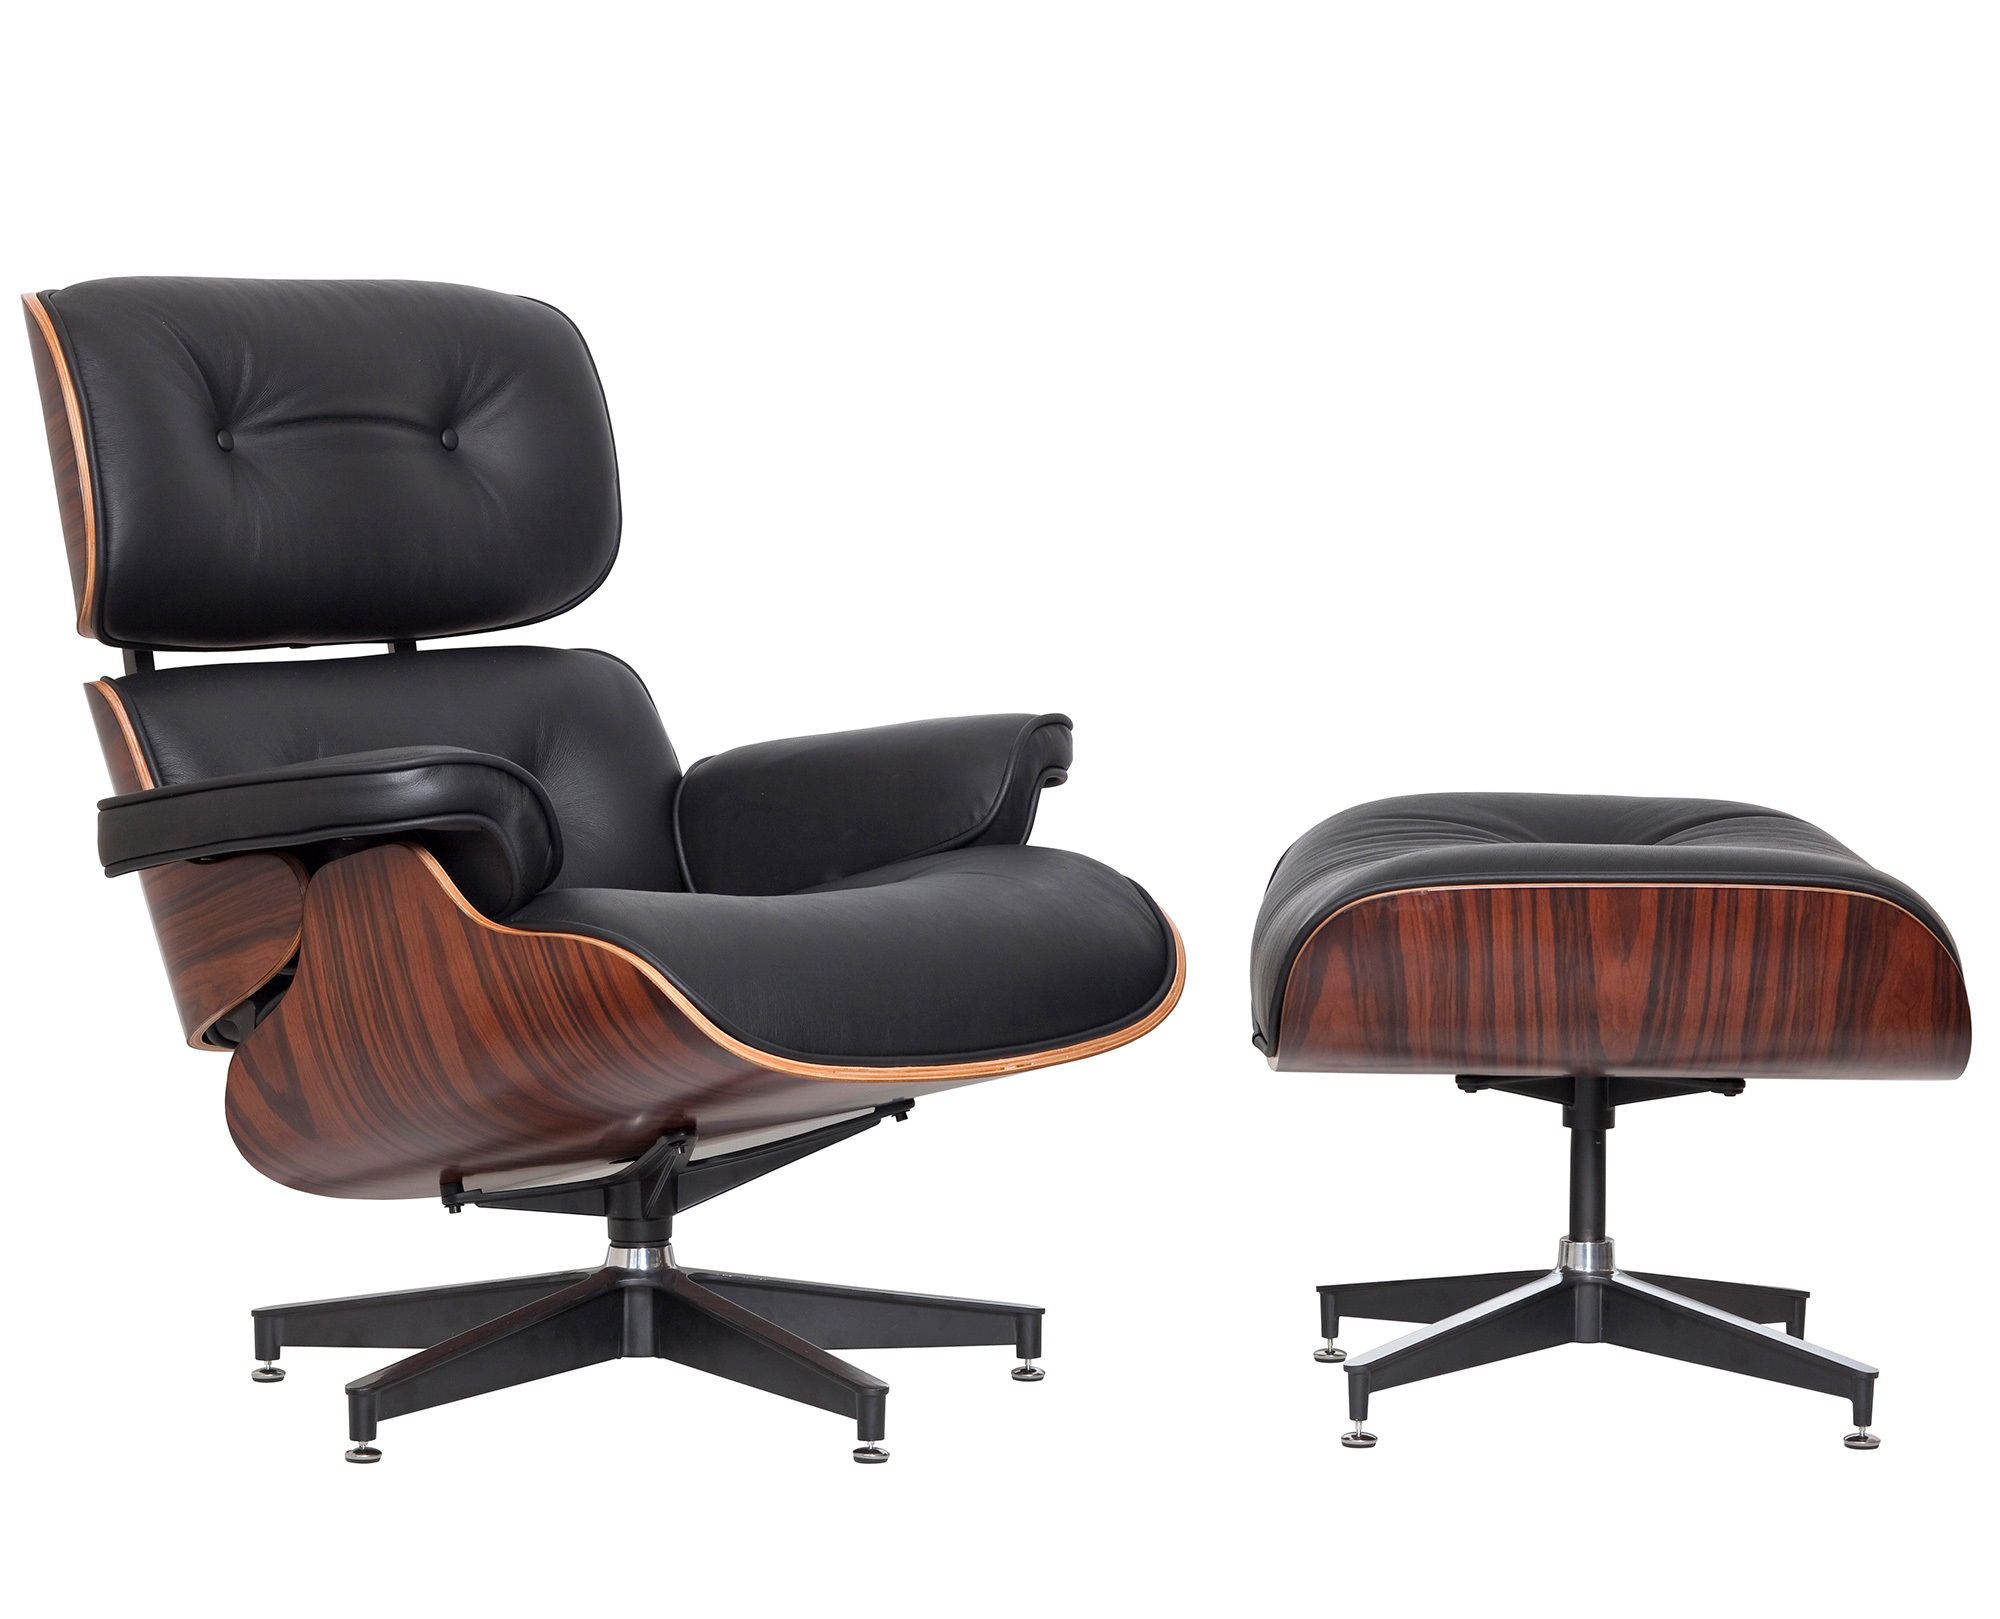 new milan direct eames classic replica lounge chair ottoman ebay. Black Bedroom Furniture Sets. Home Design Ideas